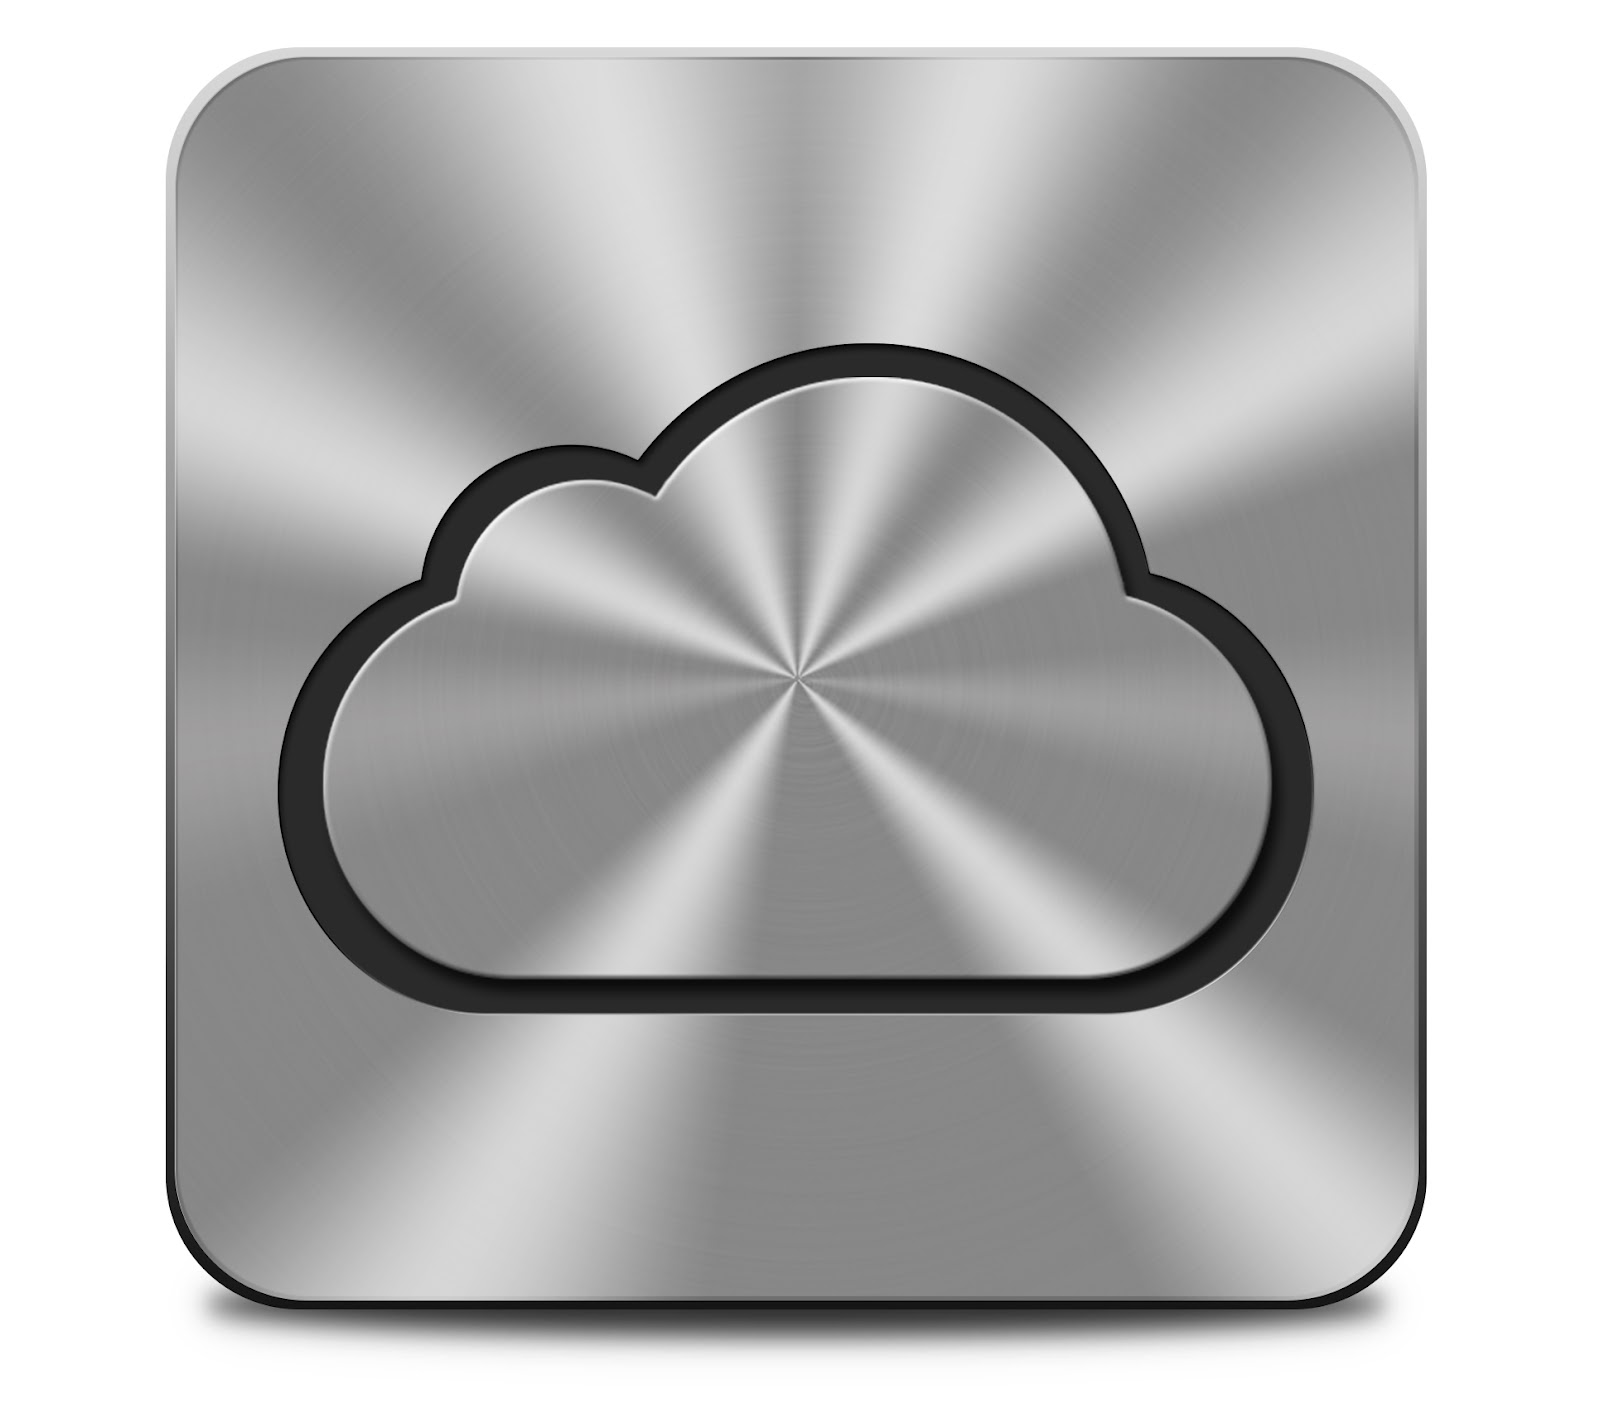 How to Draw Apple iCloud Icon - Photoshop Tutorial - Hongkiat